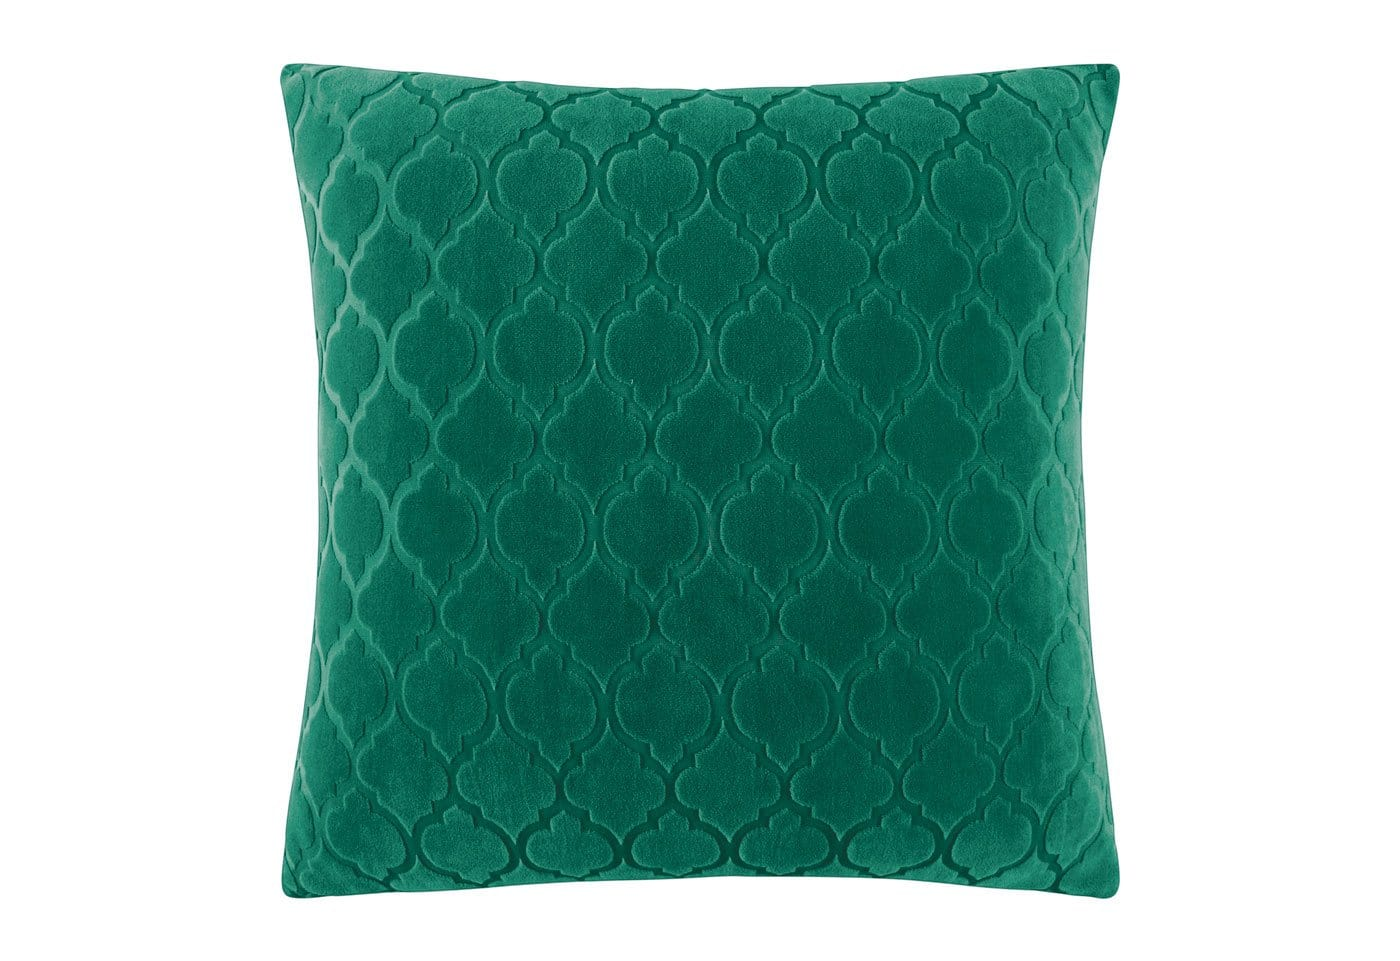 Stretch Grand Marrakesh 18 Inch Square Pillow Cover - 18 x 18 / Emerald Green